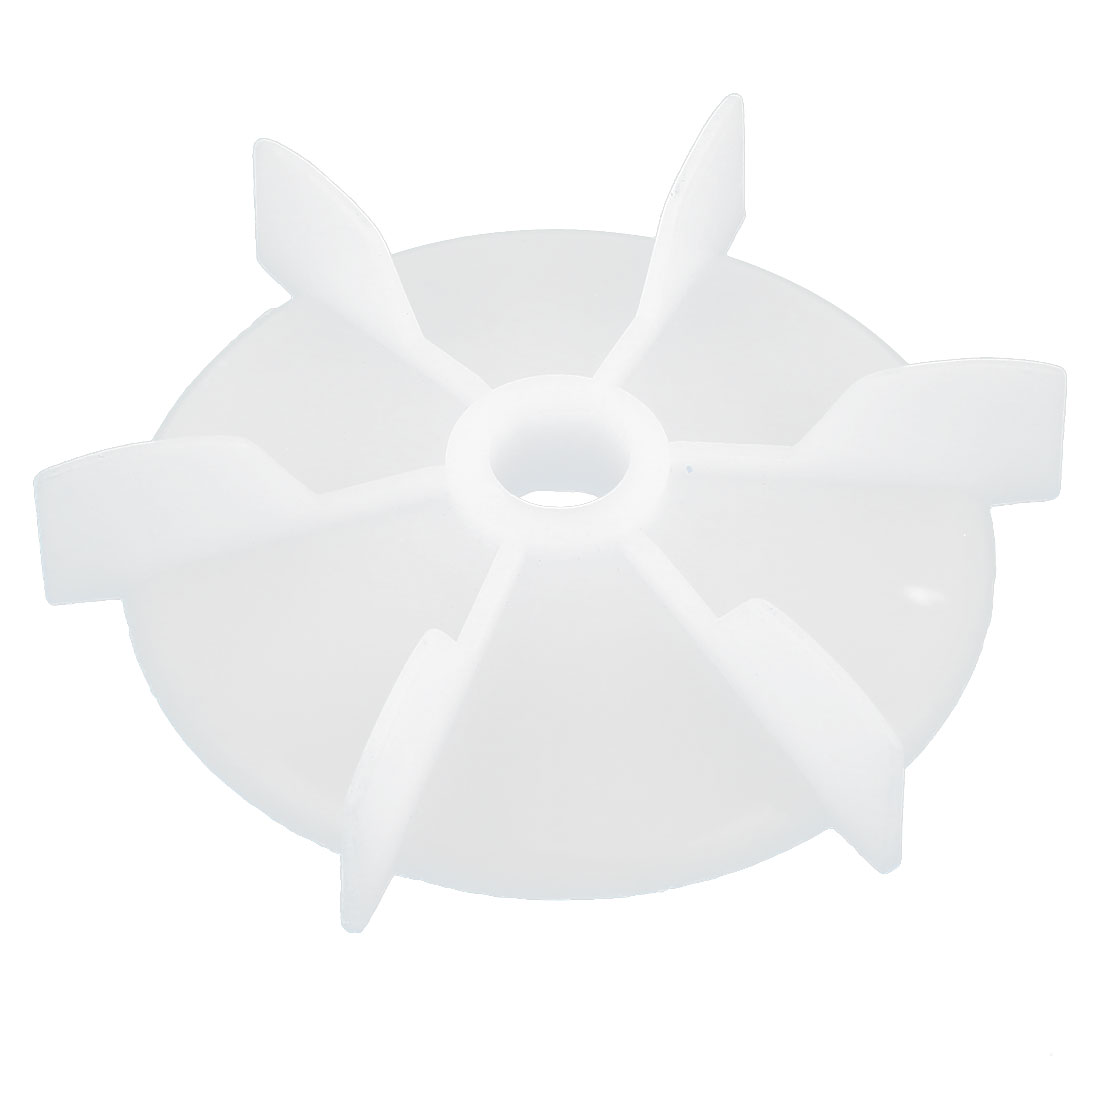 14mm D Shape Inner Hole Dia White Plastic 6 Impeller Motor Cooling Fan Vane Wheel